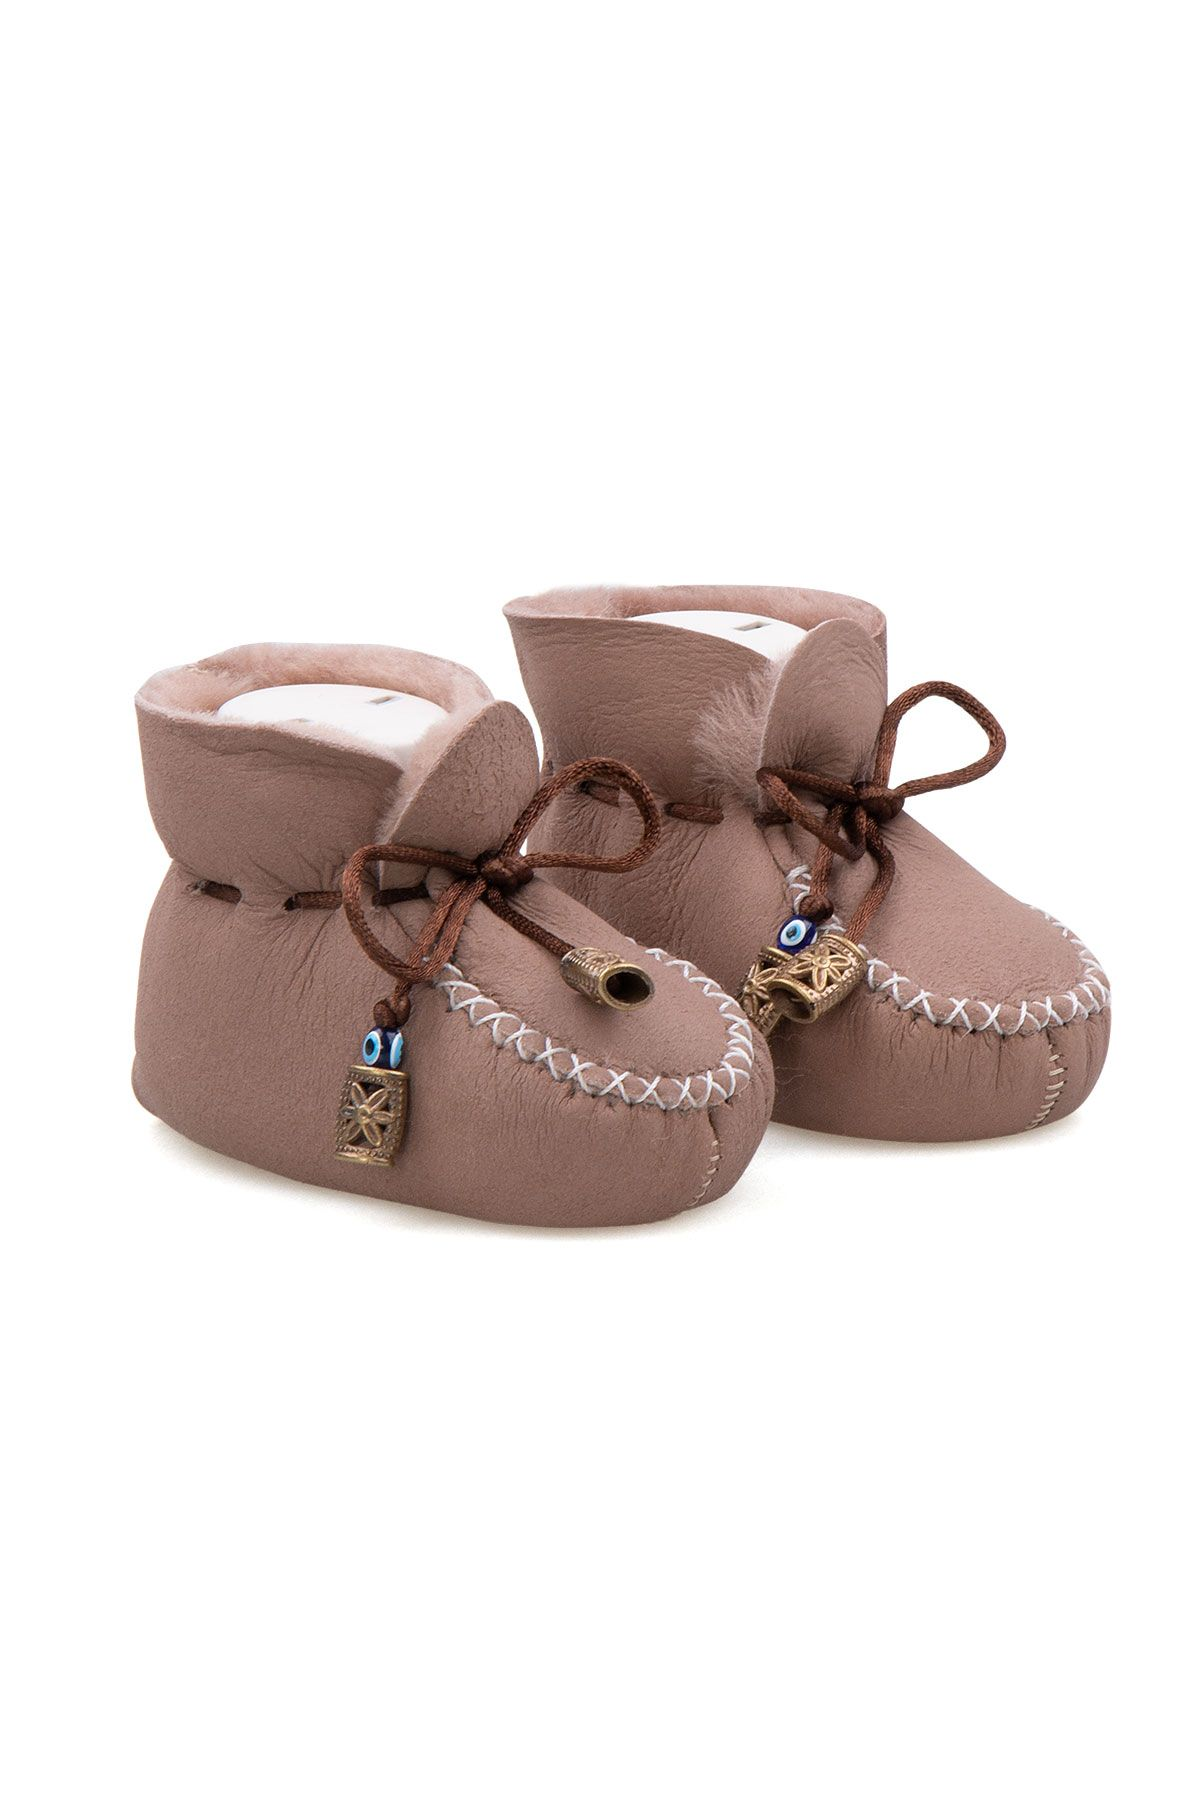 Pegia Shearling Baby's Booties 141115 Powdery